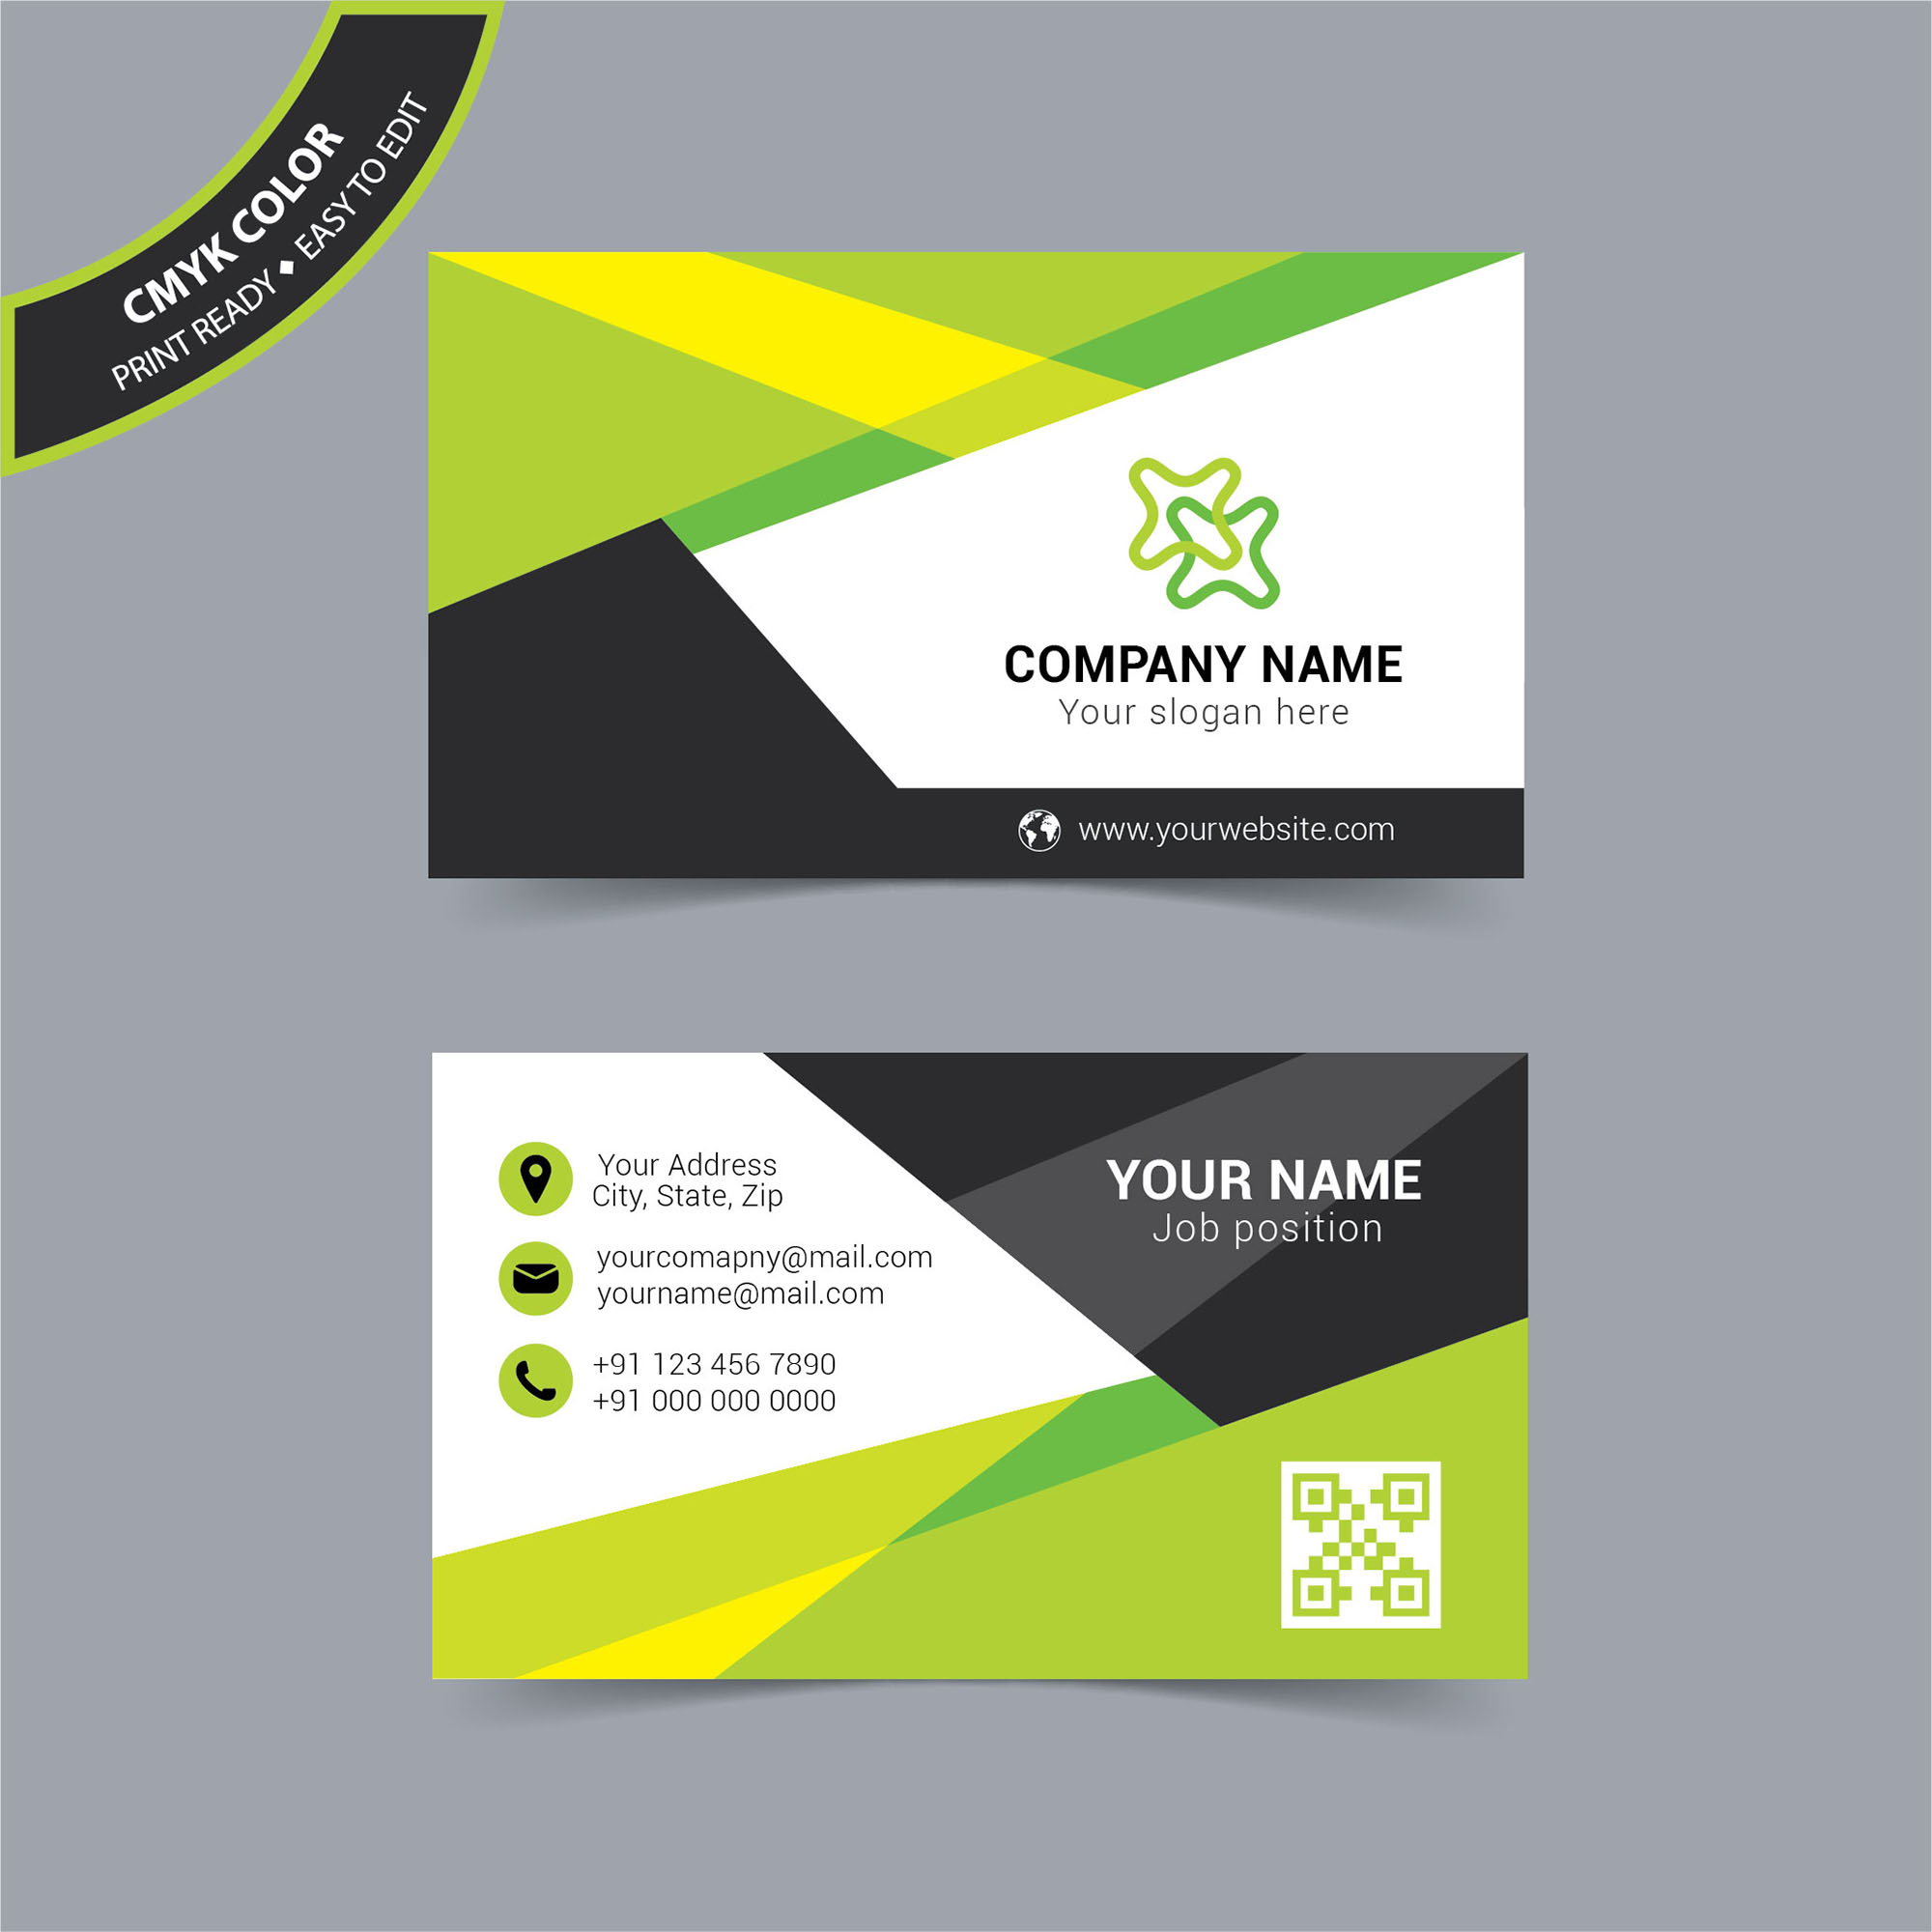 Modern Colorful Business Card Design Free Download - Wisxi.com